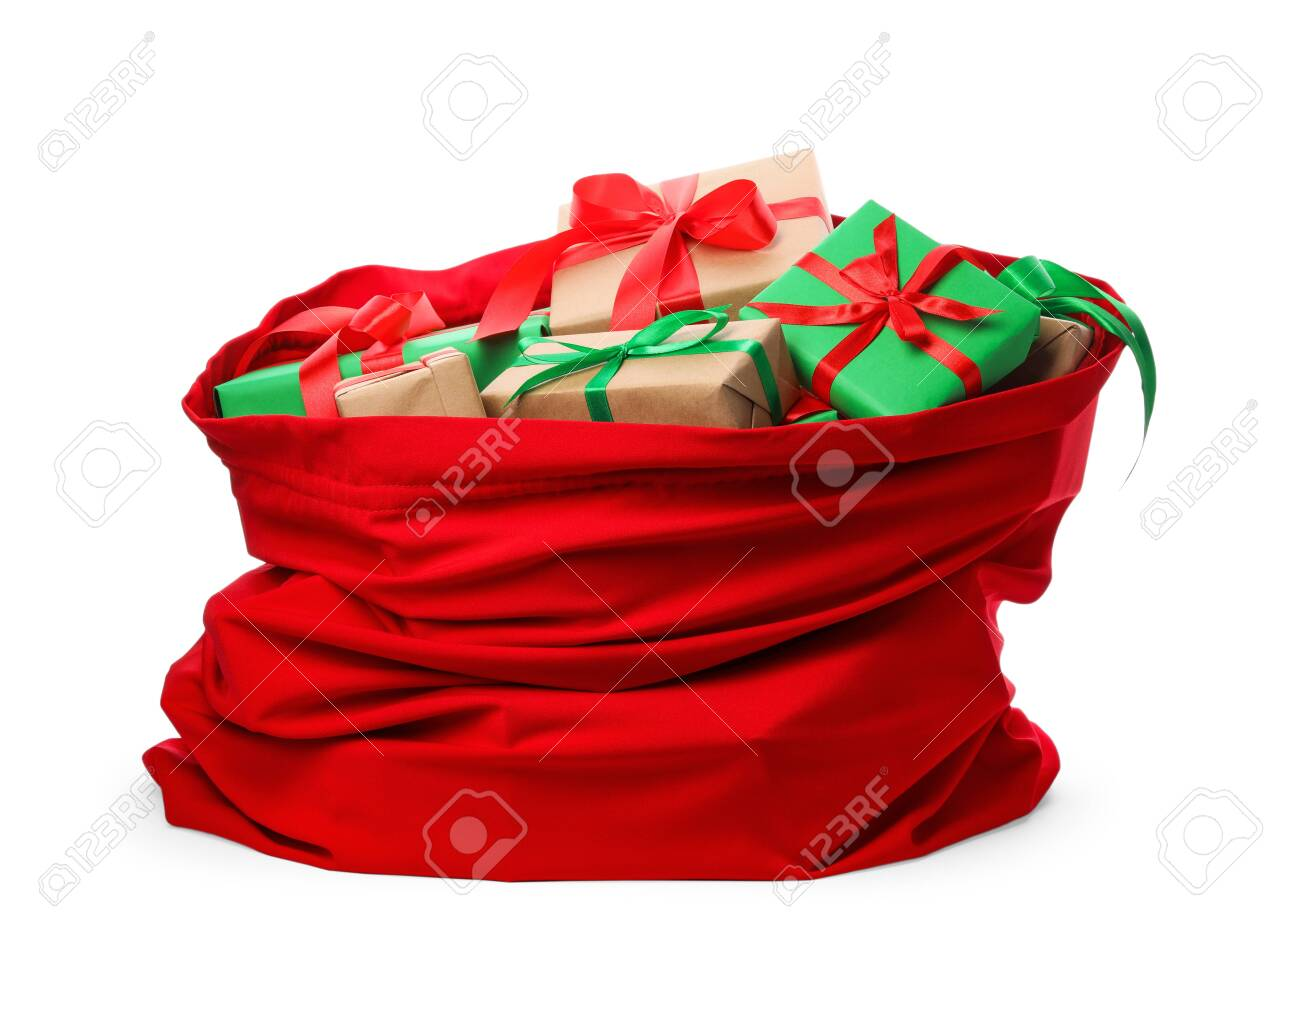 Santa Claus red bag full of presents isolated on white - 129728829